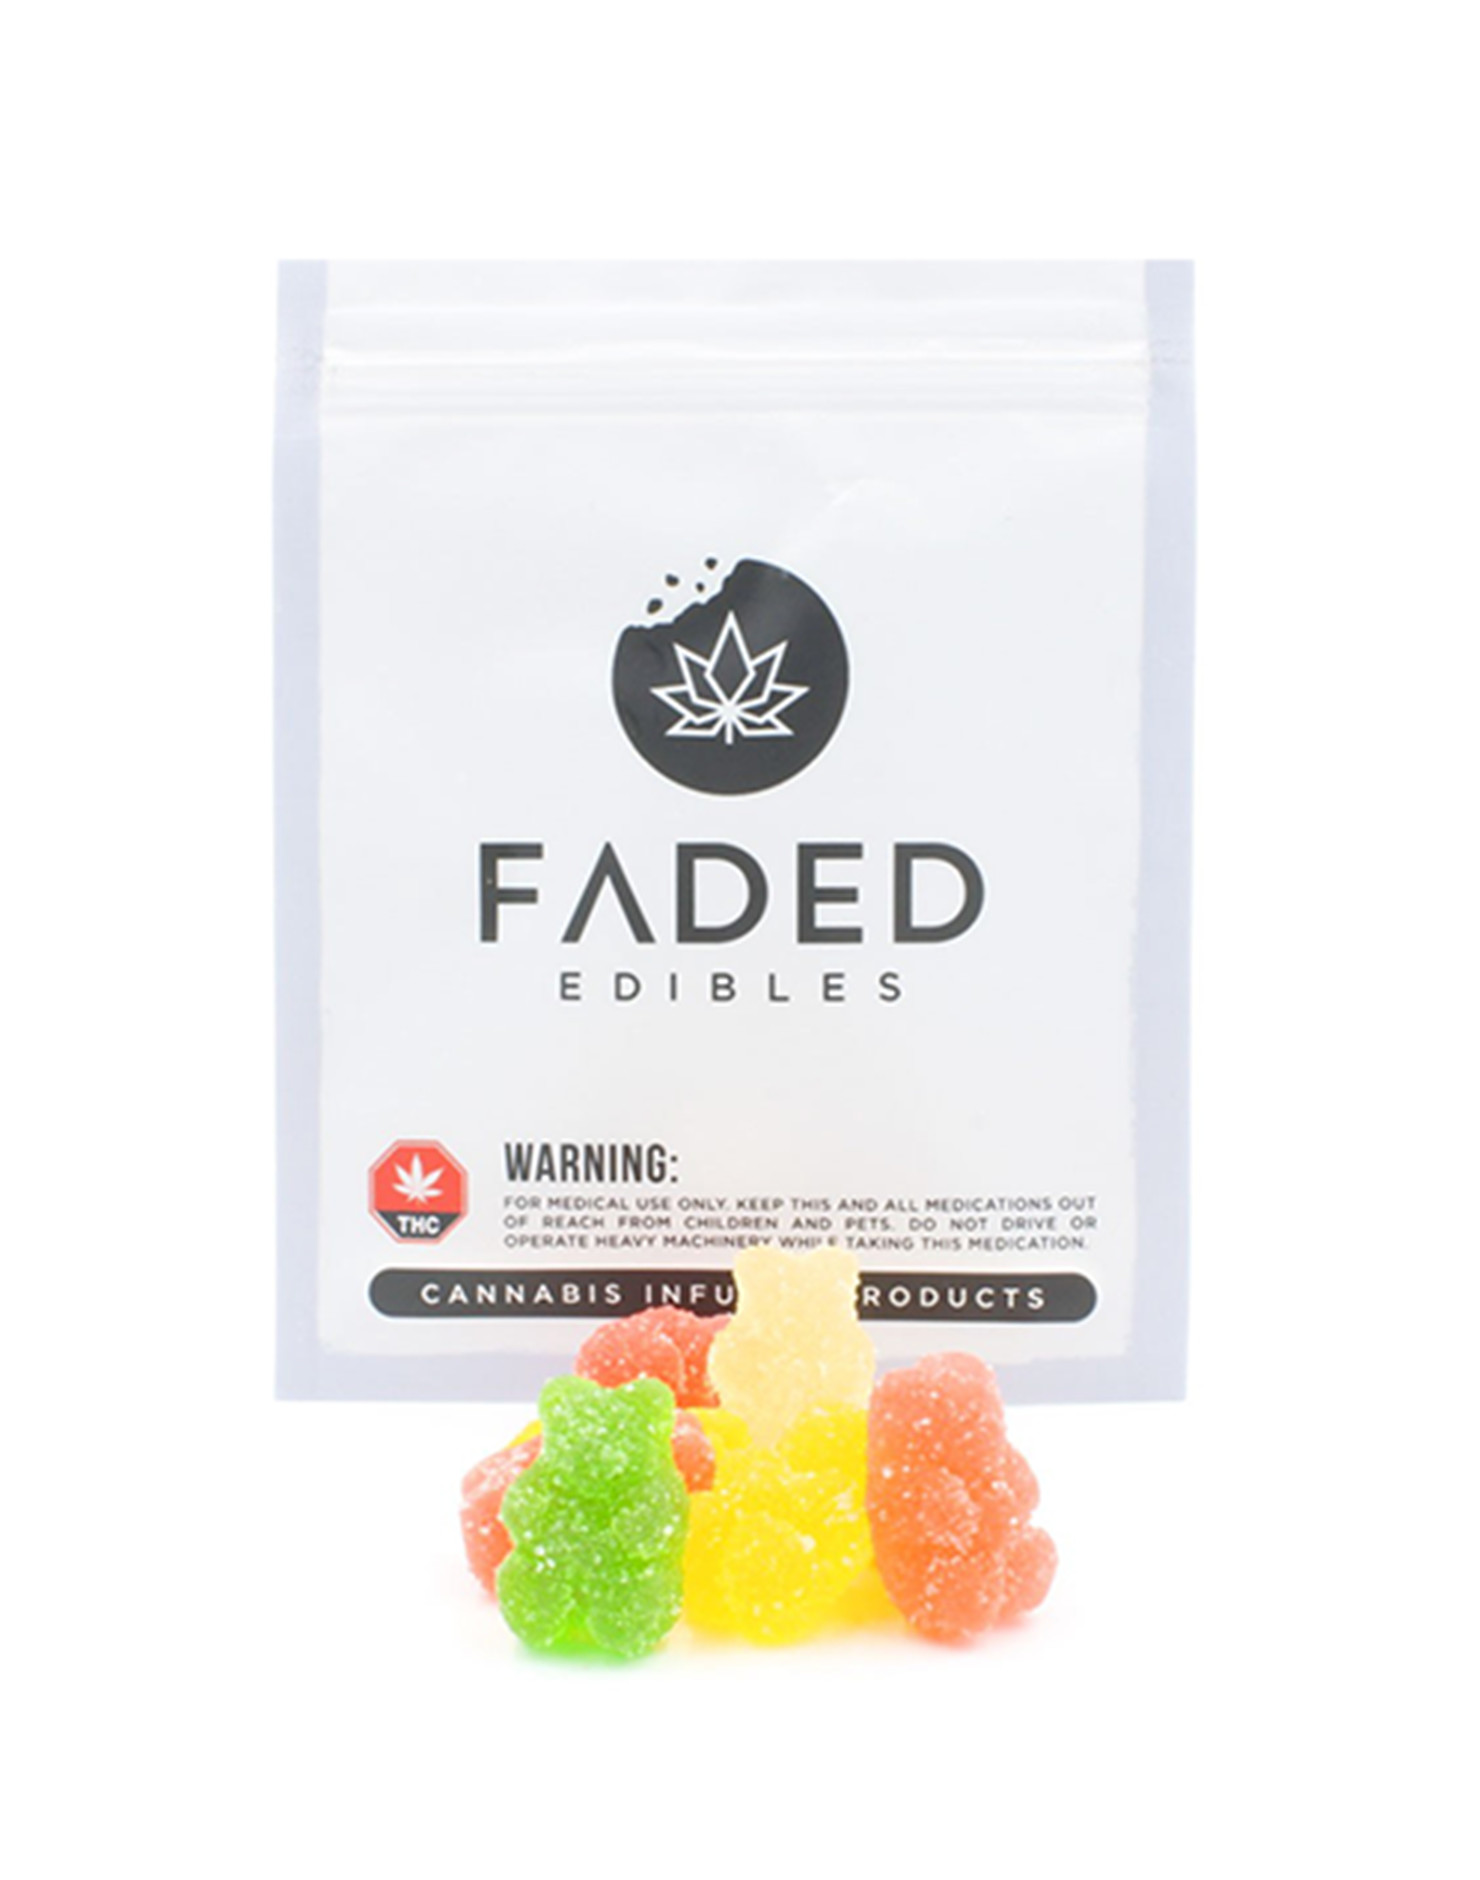 Sour Gummy Bears by Faded Edibles (150mg THC) by Ganja Grams - Image © 2018 Ganja Grams. All Rights Reserved.